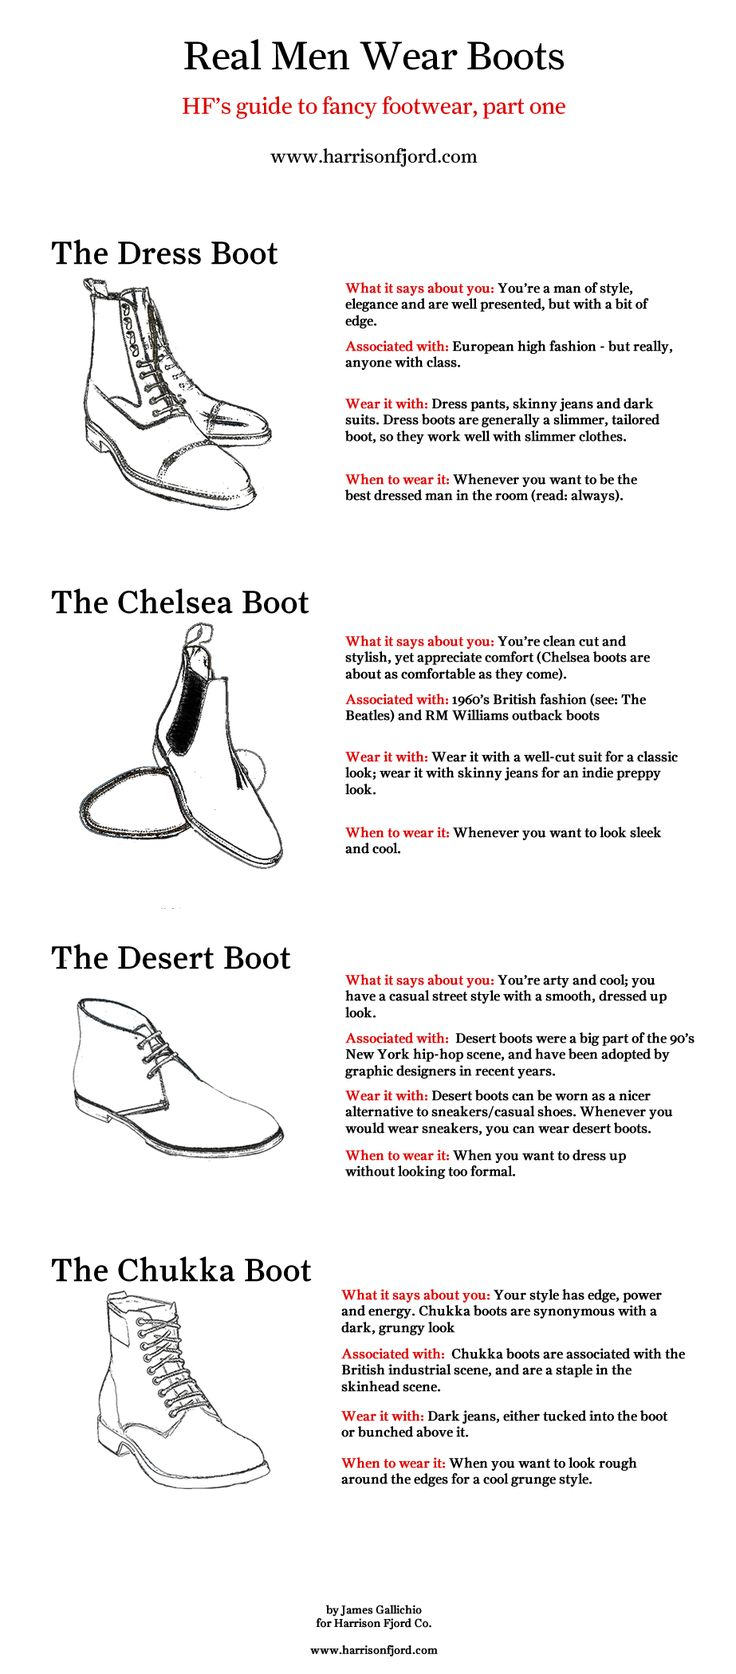 Harrison Fjord's Guide to Fancy Footwear: Real Men Wear Boots